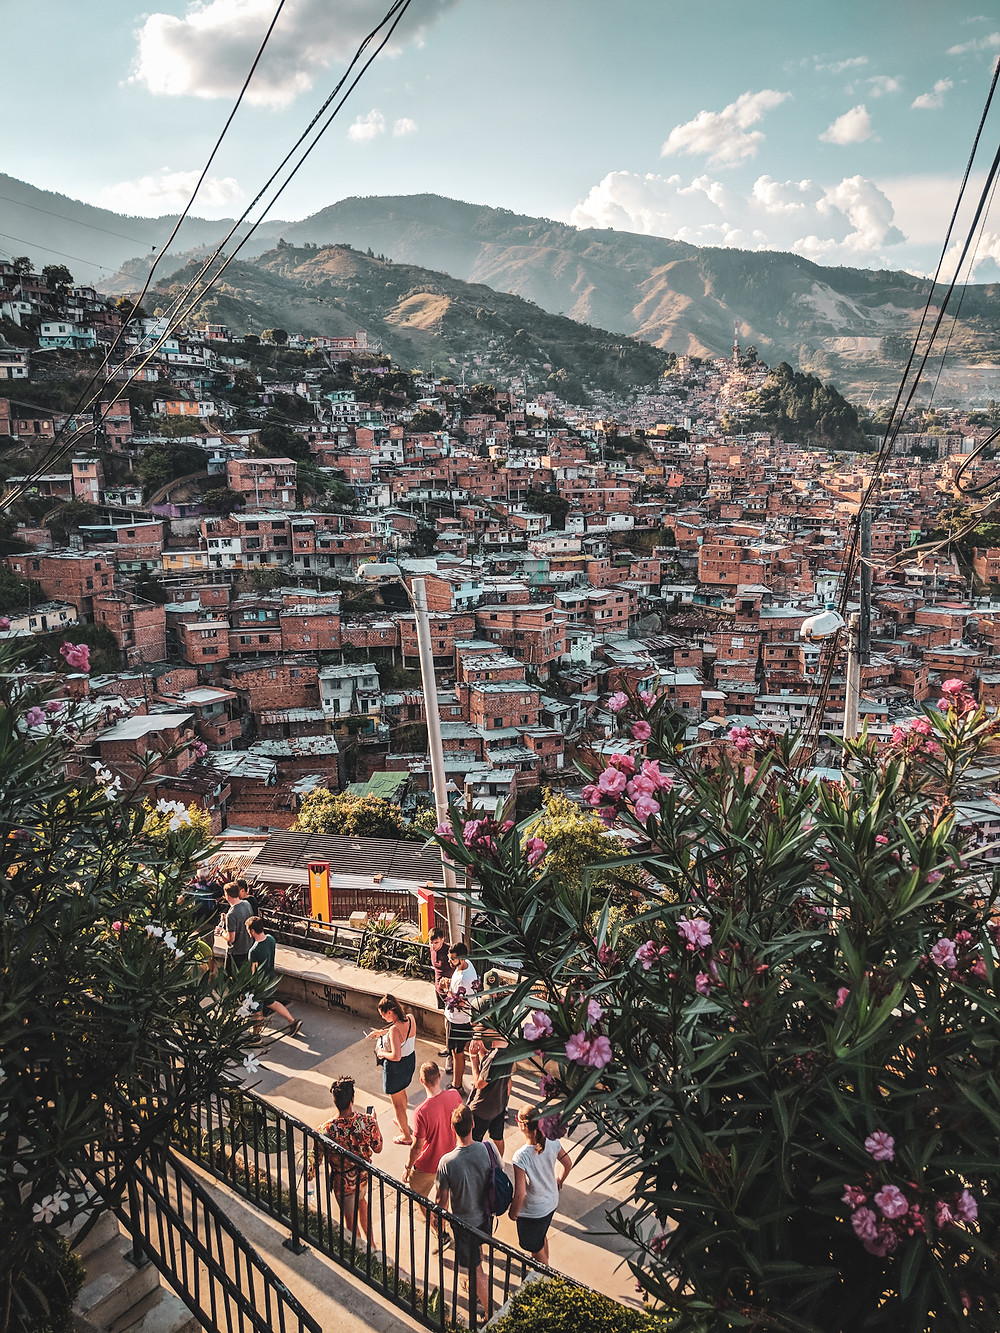 Overlooking Medellín, Colombia from a viewpoint in Comuna 13.